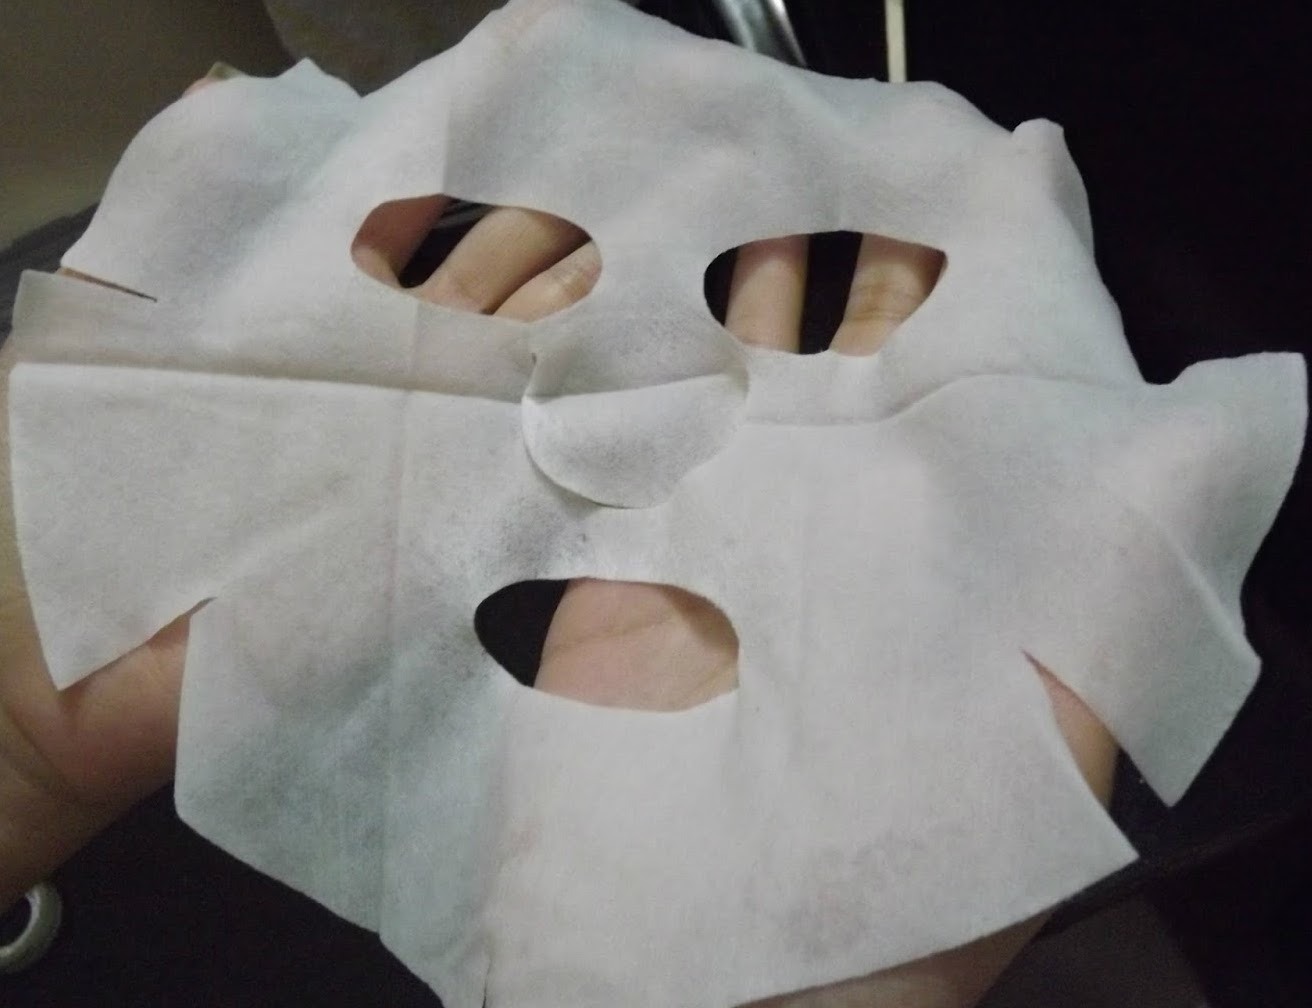 #Review: I'm Real Lemon Mask Sheets (Brightening) By Tony